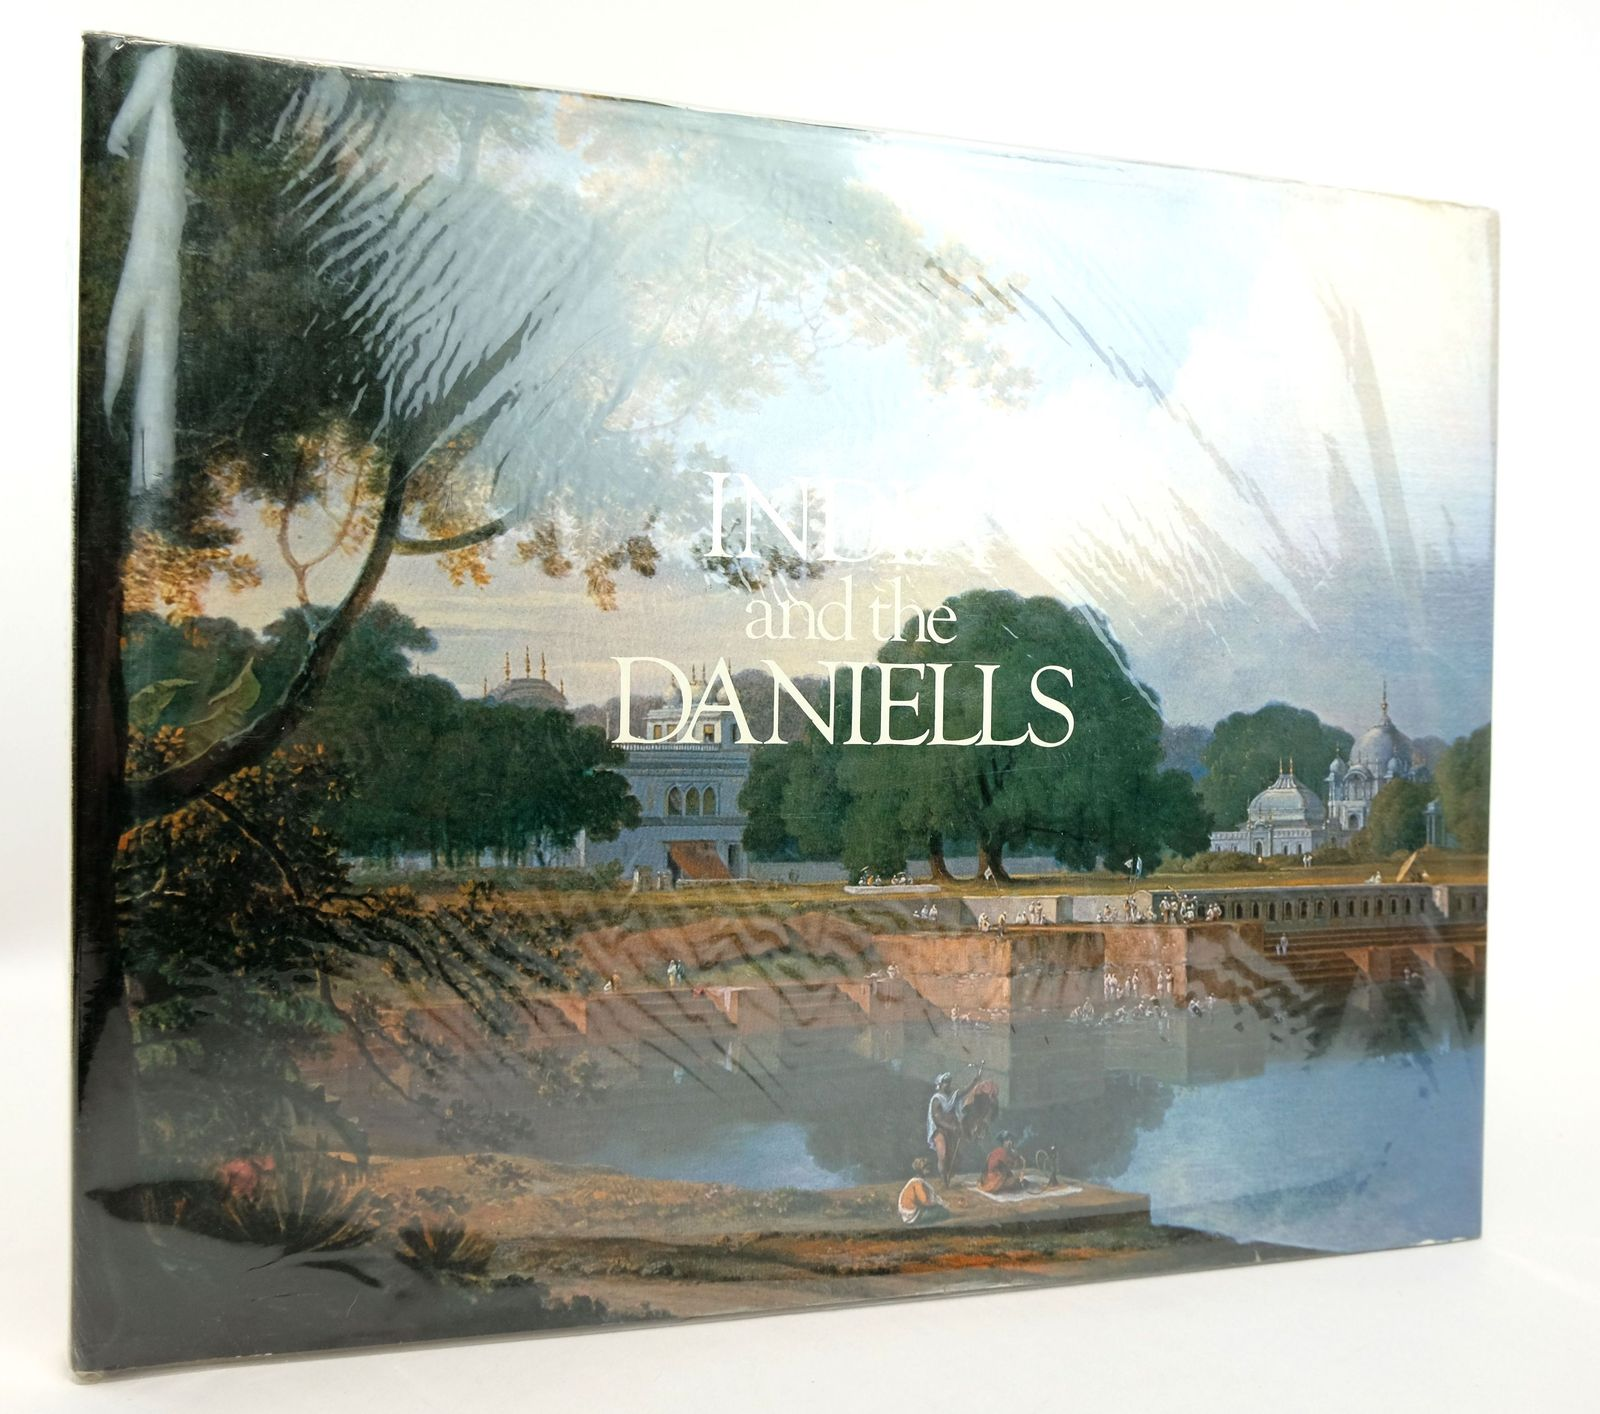 Photo of OIL PAINTINGS OF INDIA AND THE EAST BY THOMAS DANIELL RA 1749-1840 AND WILLIAM DANIELL RA 1969-1837